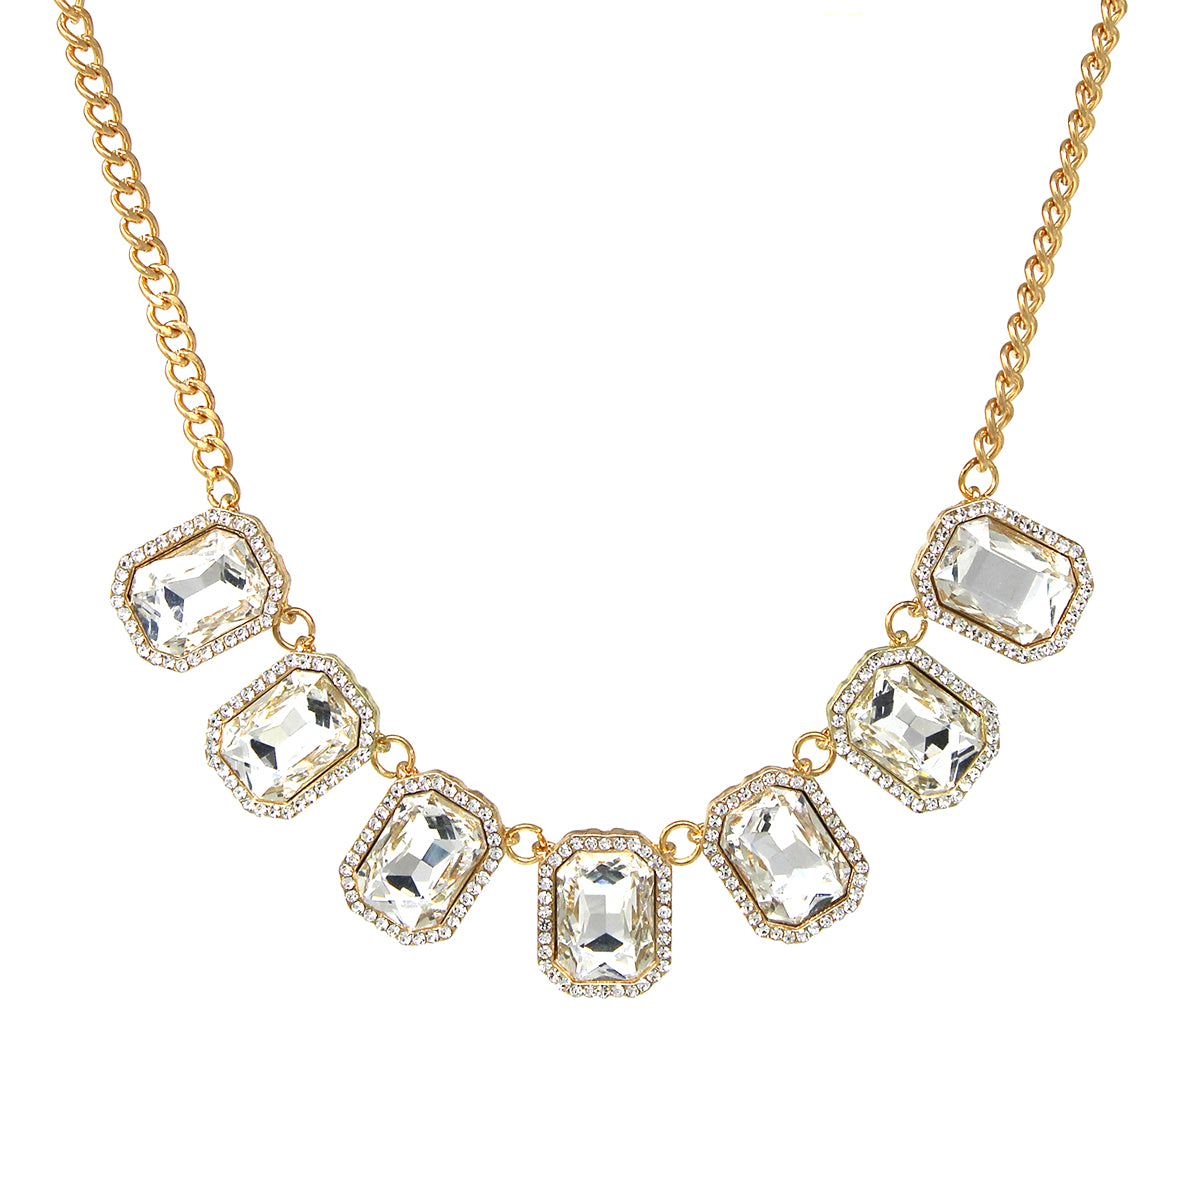 Rhinestone Pave Rectangle Glass Stone Short Collar Necklace